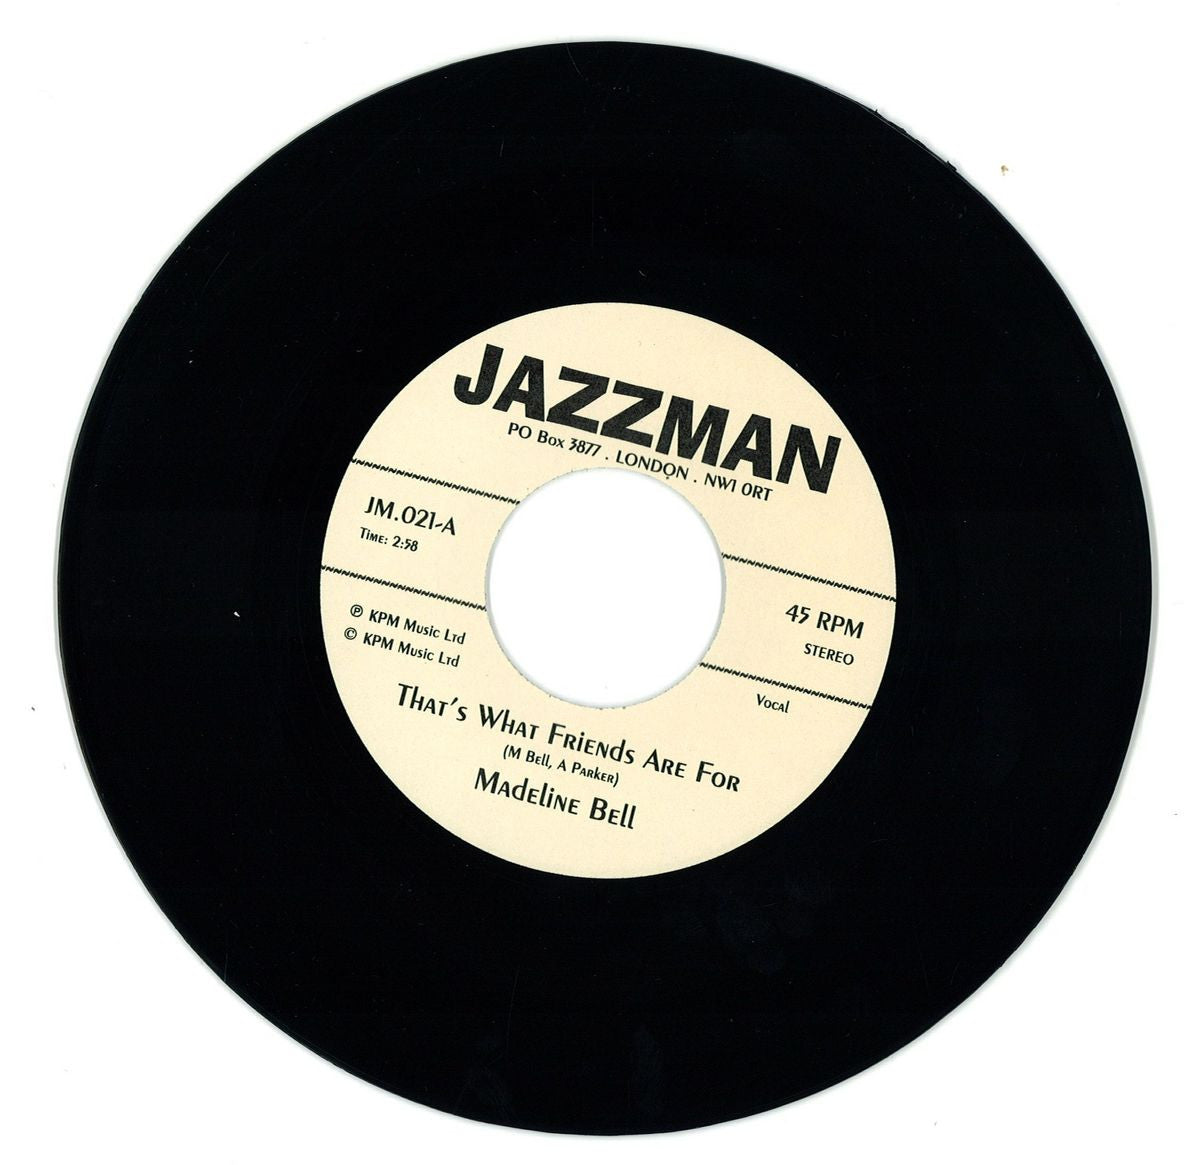 Madeline Bell / Alan Parker – That's What Friends Are For 7